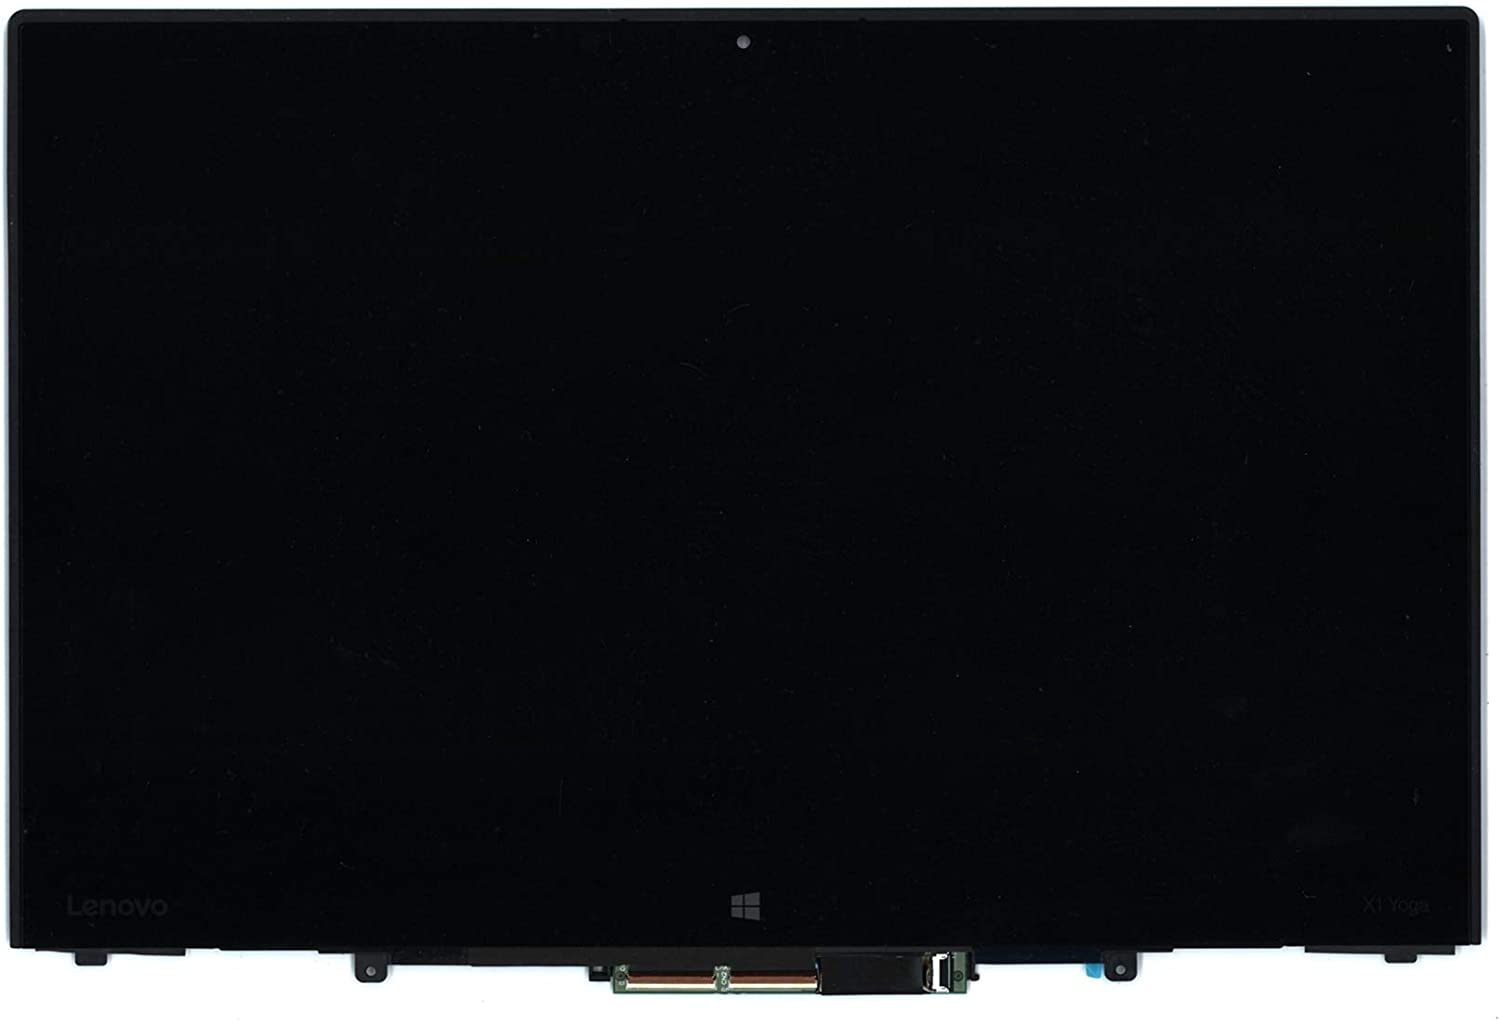 """14"""" WQHD 2560x1440 LCD Panel IPS LED Touch Screen Display with Touch Control Board and Bezel Frame Assembly Fit Lenovo Thinkpad X1 Yoga 1st Generation FRU: 00UR190 00UR191 00UR192"""